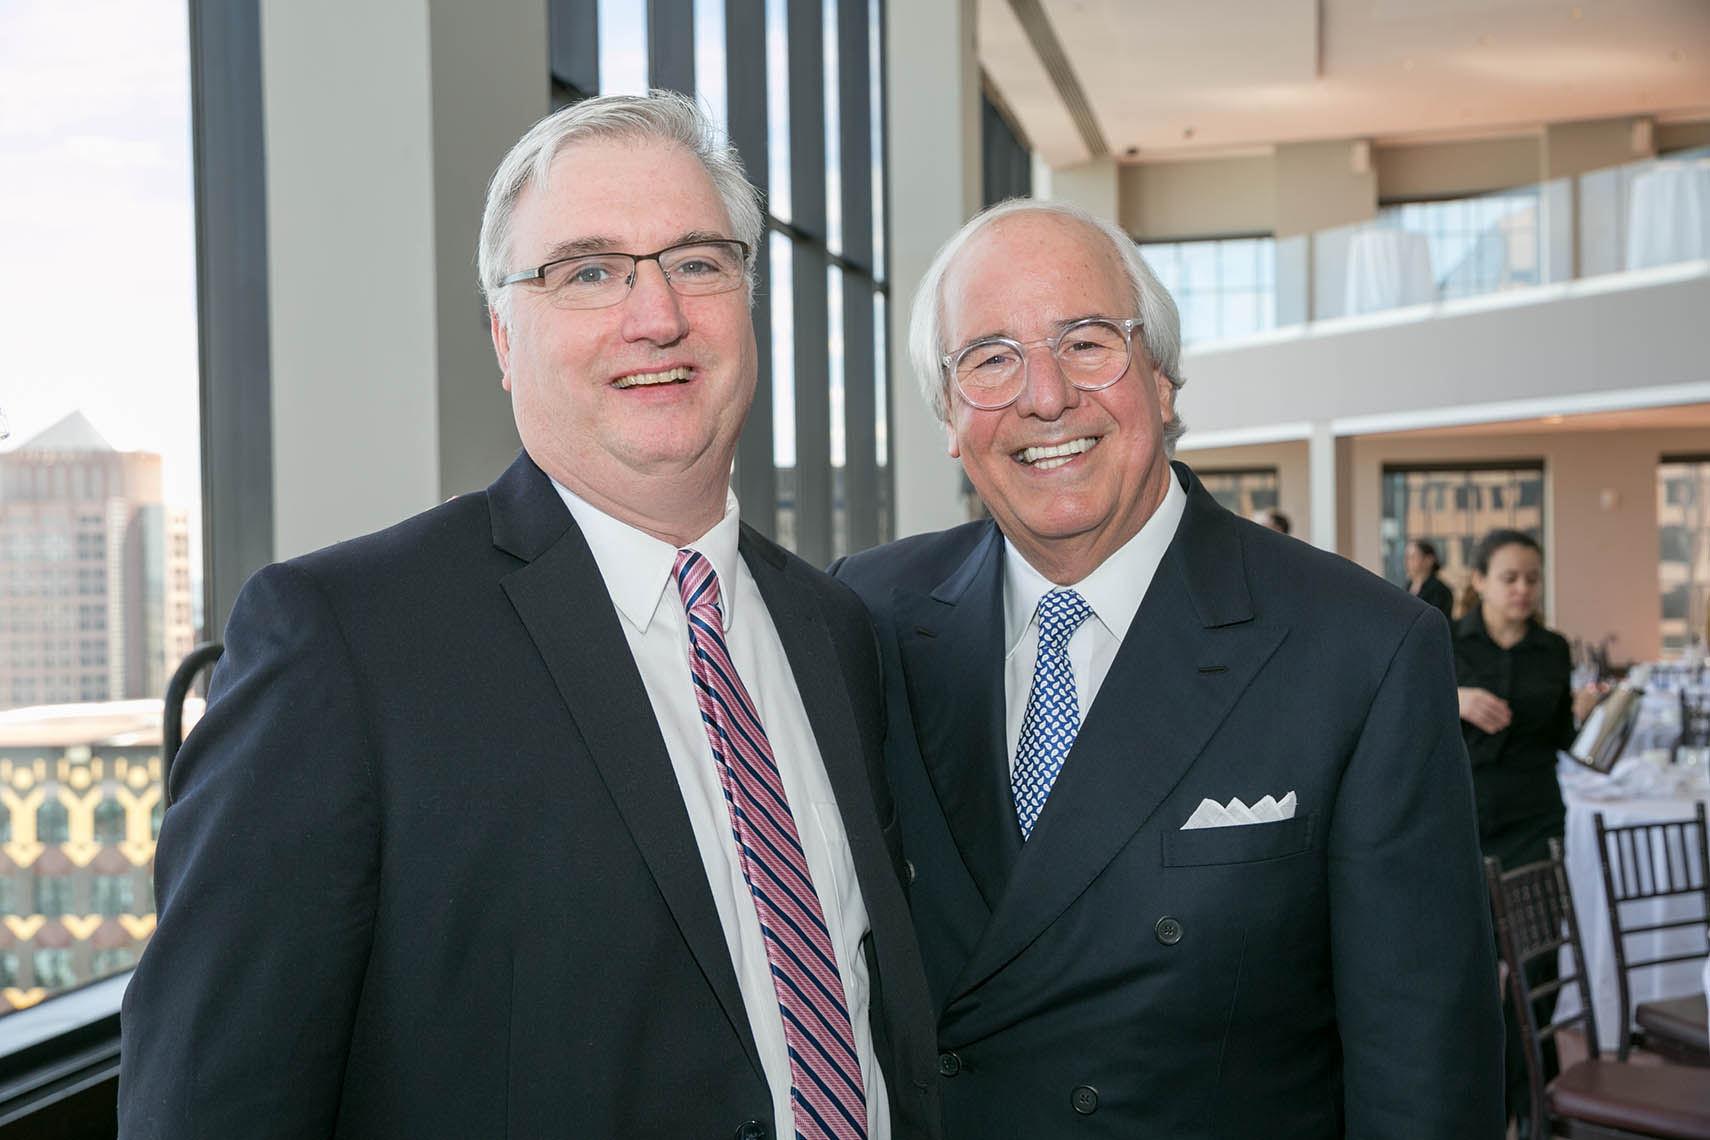 Frank Abagnale poses with a member of the Association of Legal Administrators Boston Chapter